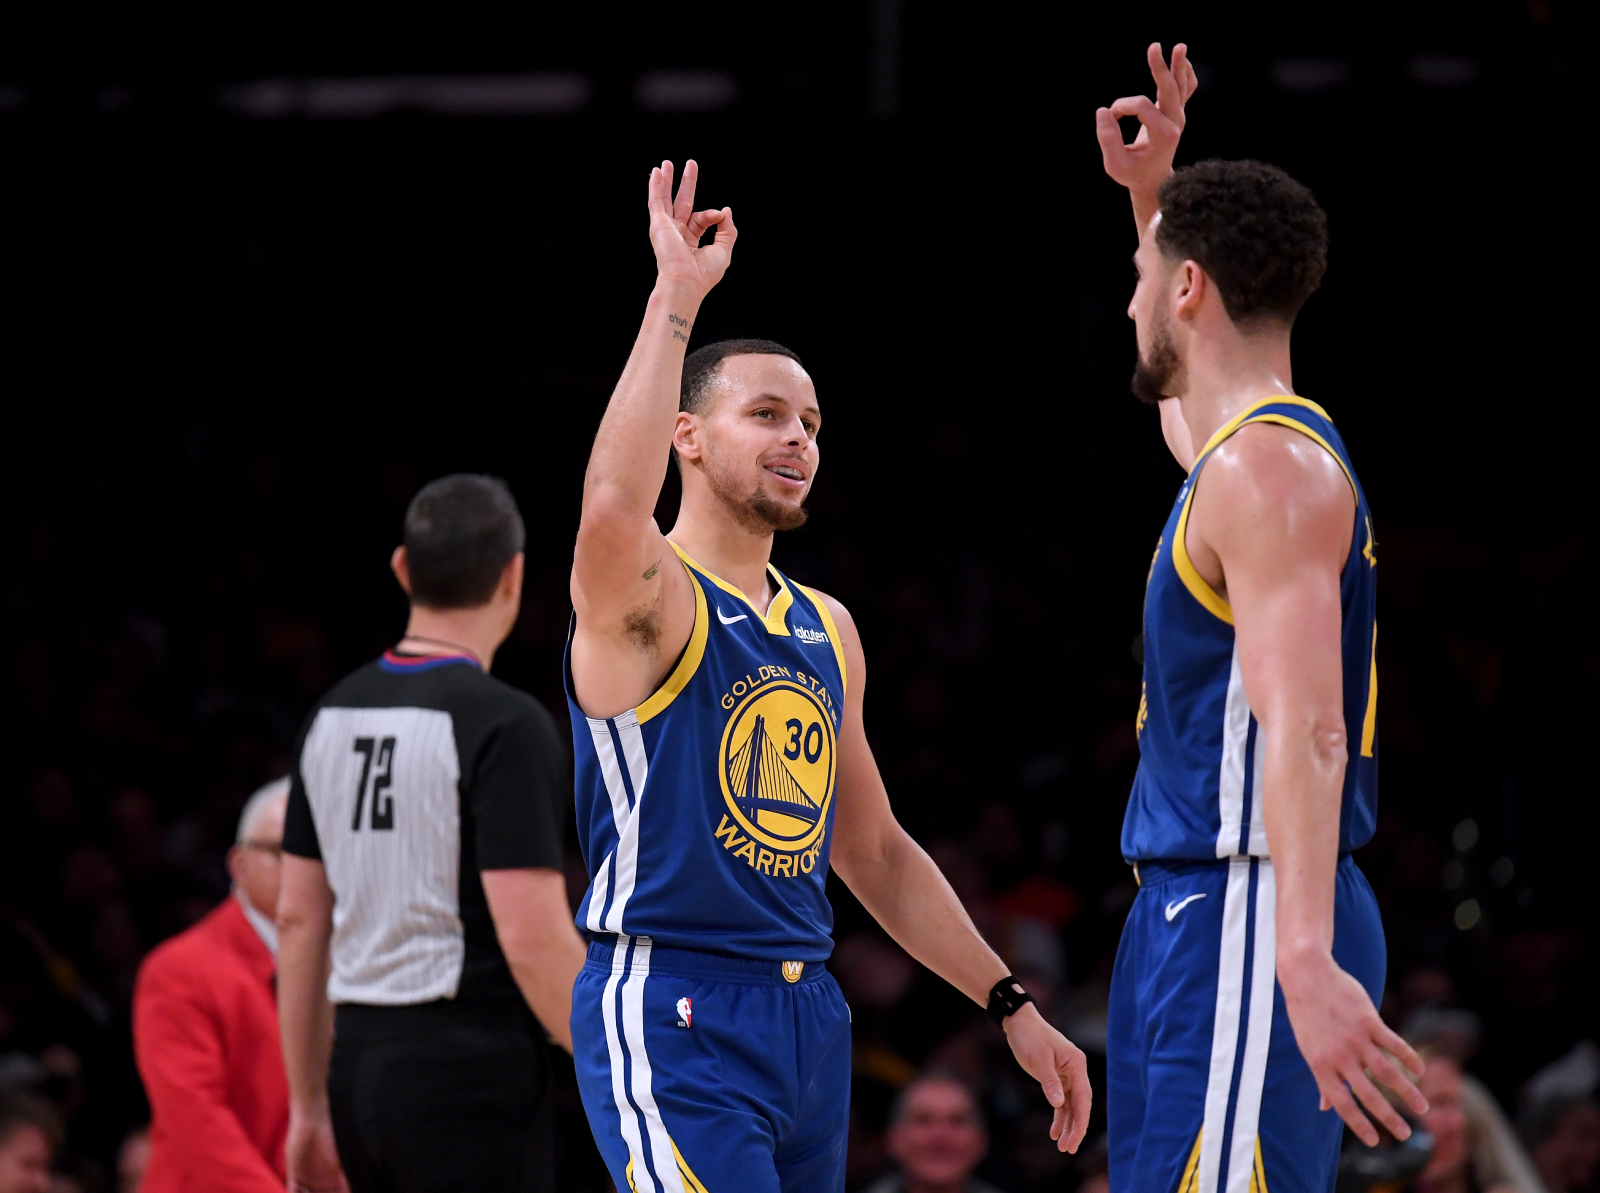 The Golden State Warriors are looking to improve before the 2020-21 season. Well, they might have found a great role player in Jeremy Lin.